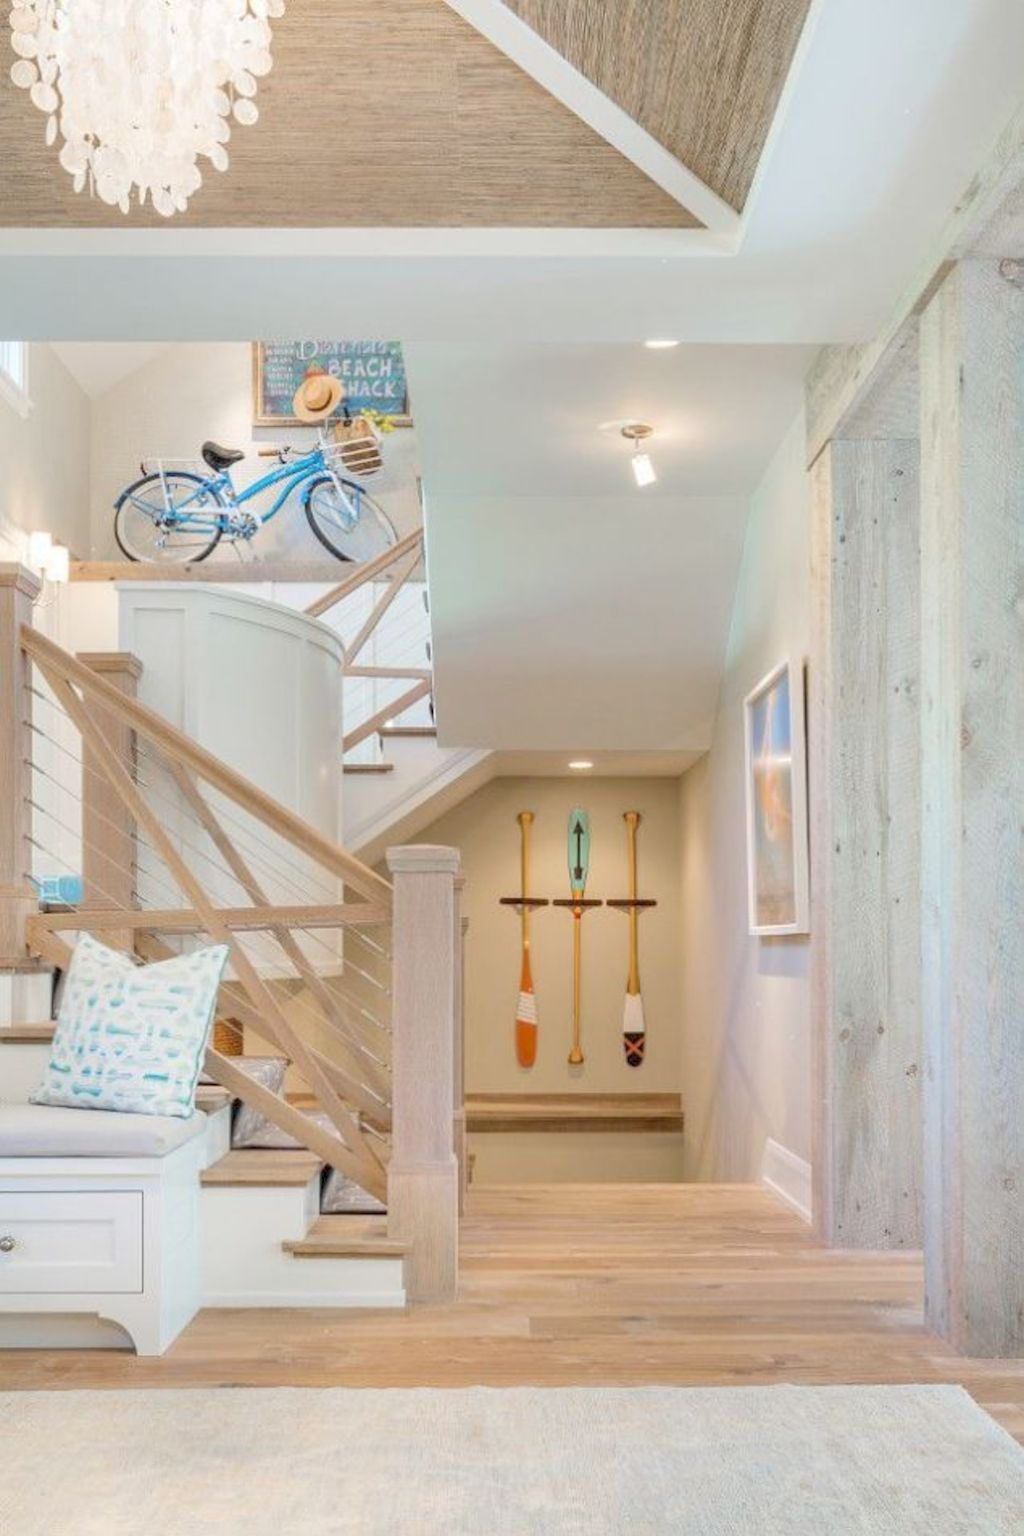 Coastal chic decoration with nautical accessories showing a fresh look in cool beach house styles Image 7